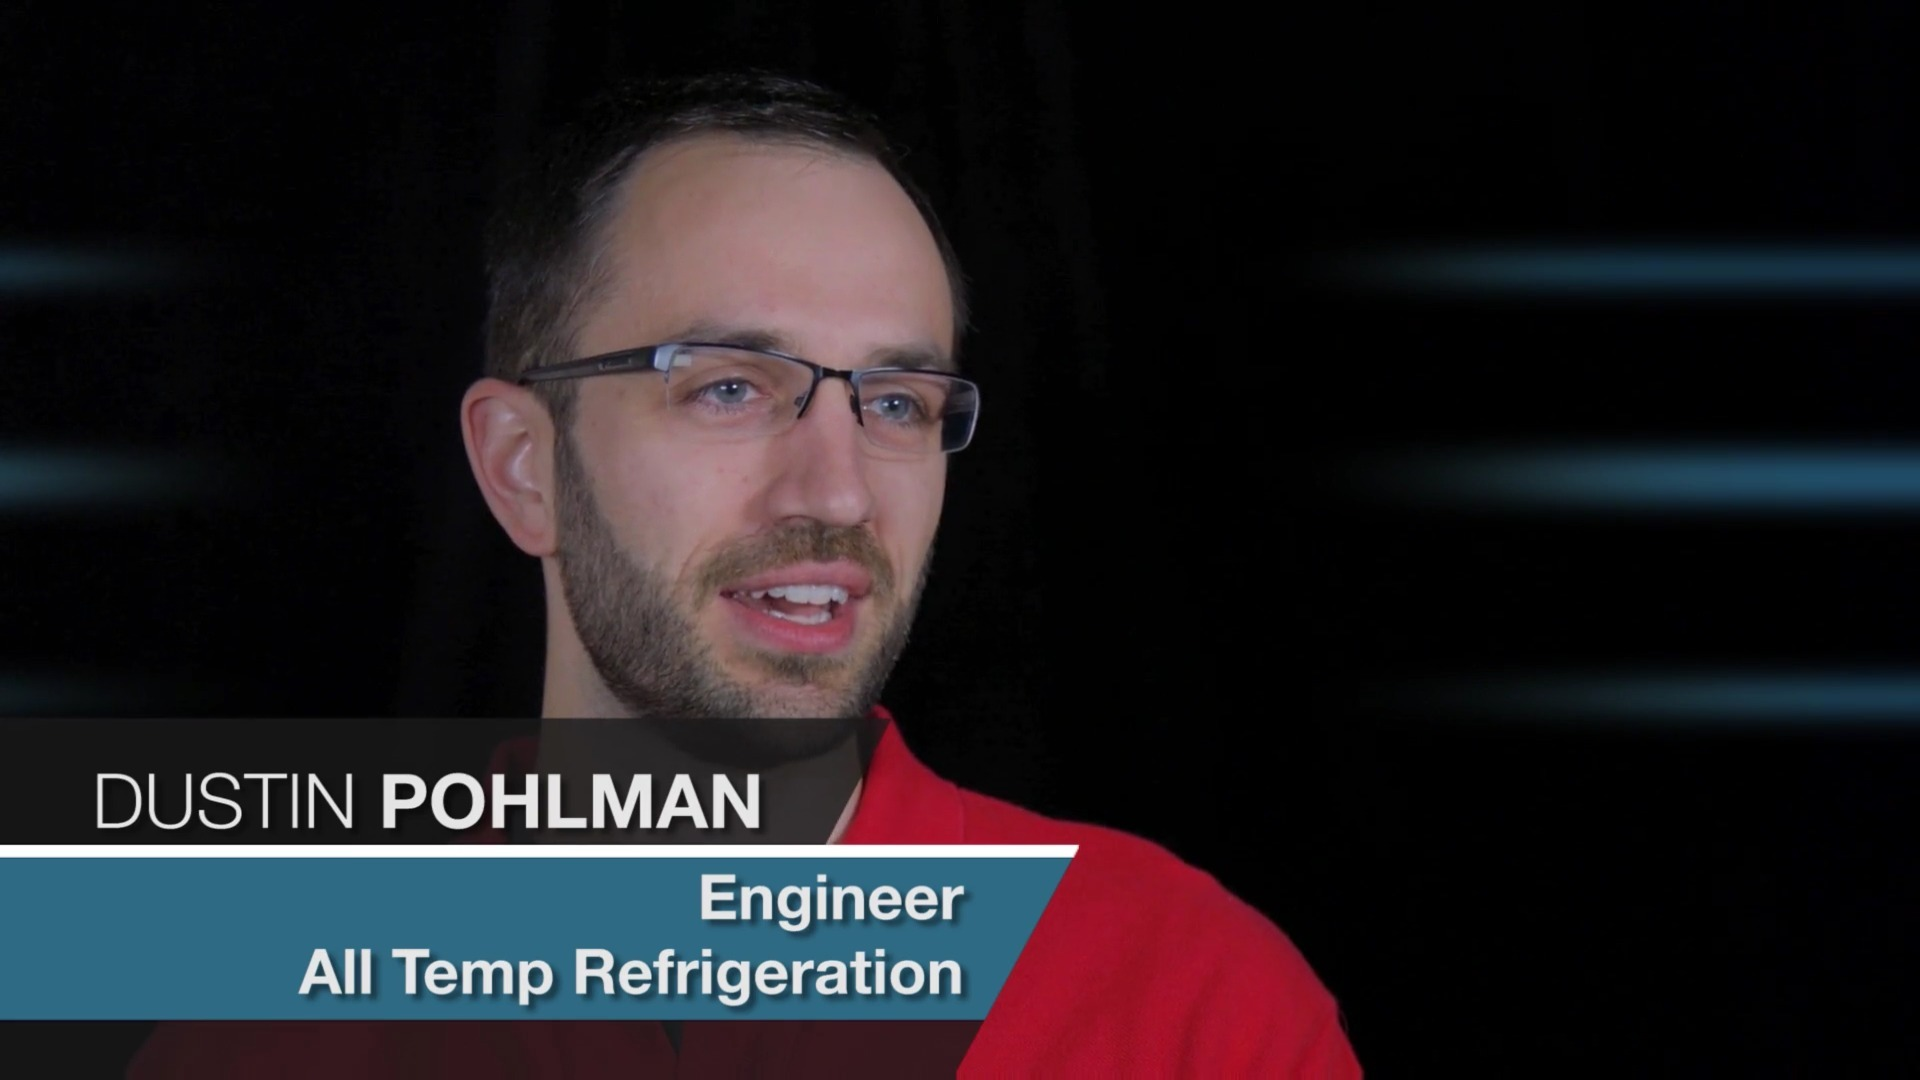 Dustin Pohlman - All Temp Refrigeration